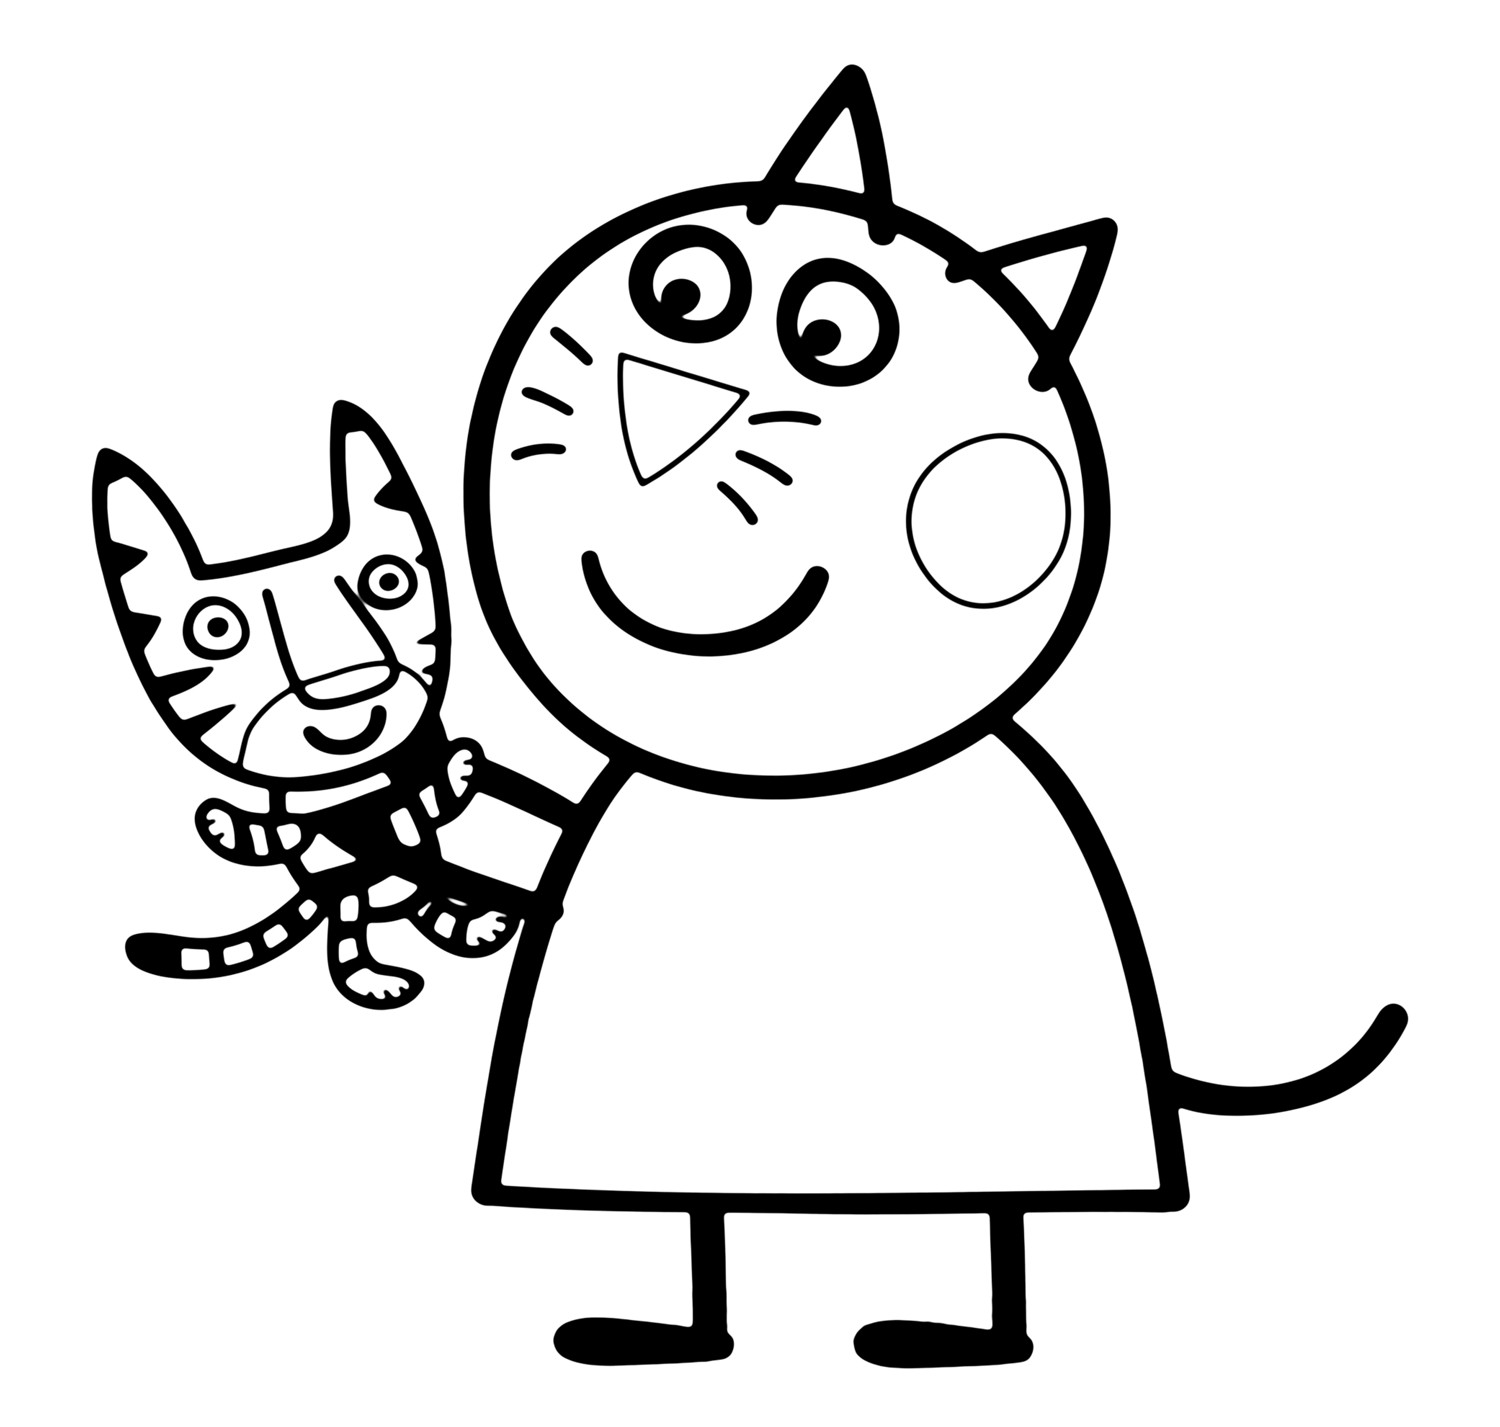 Peppa Pig Candy Cat Coloring Pages - BubaKids.com